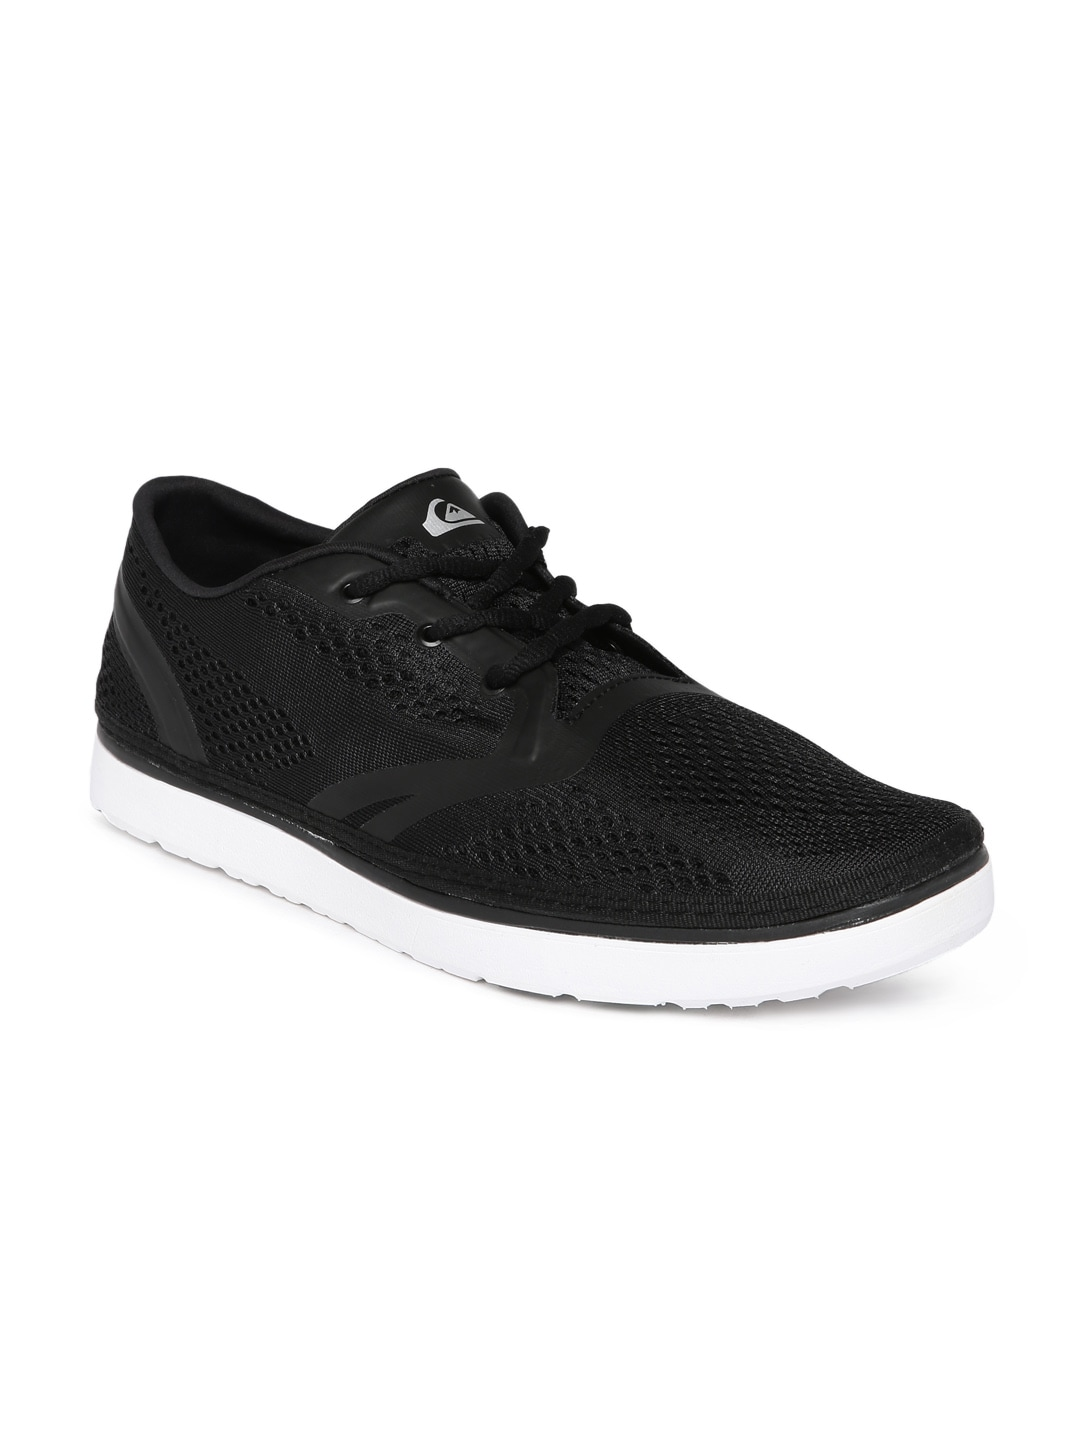 7fadb5204f1 Quiksilver Shoes - Buy Latest Quiksliver Shoes Online